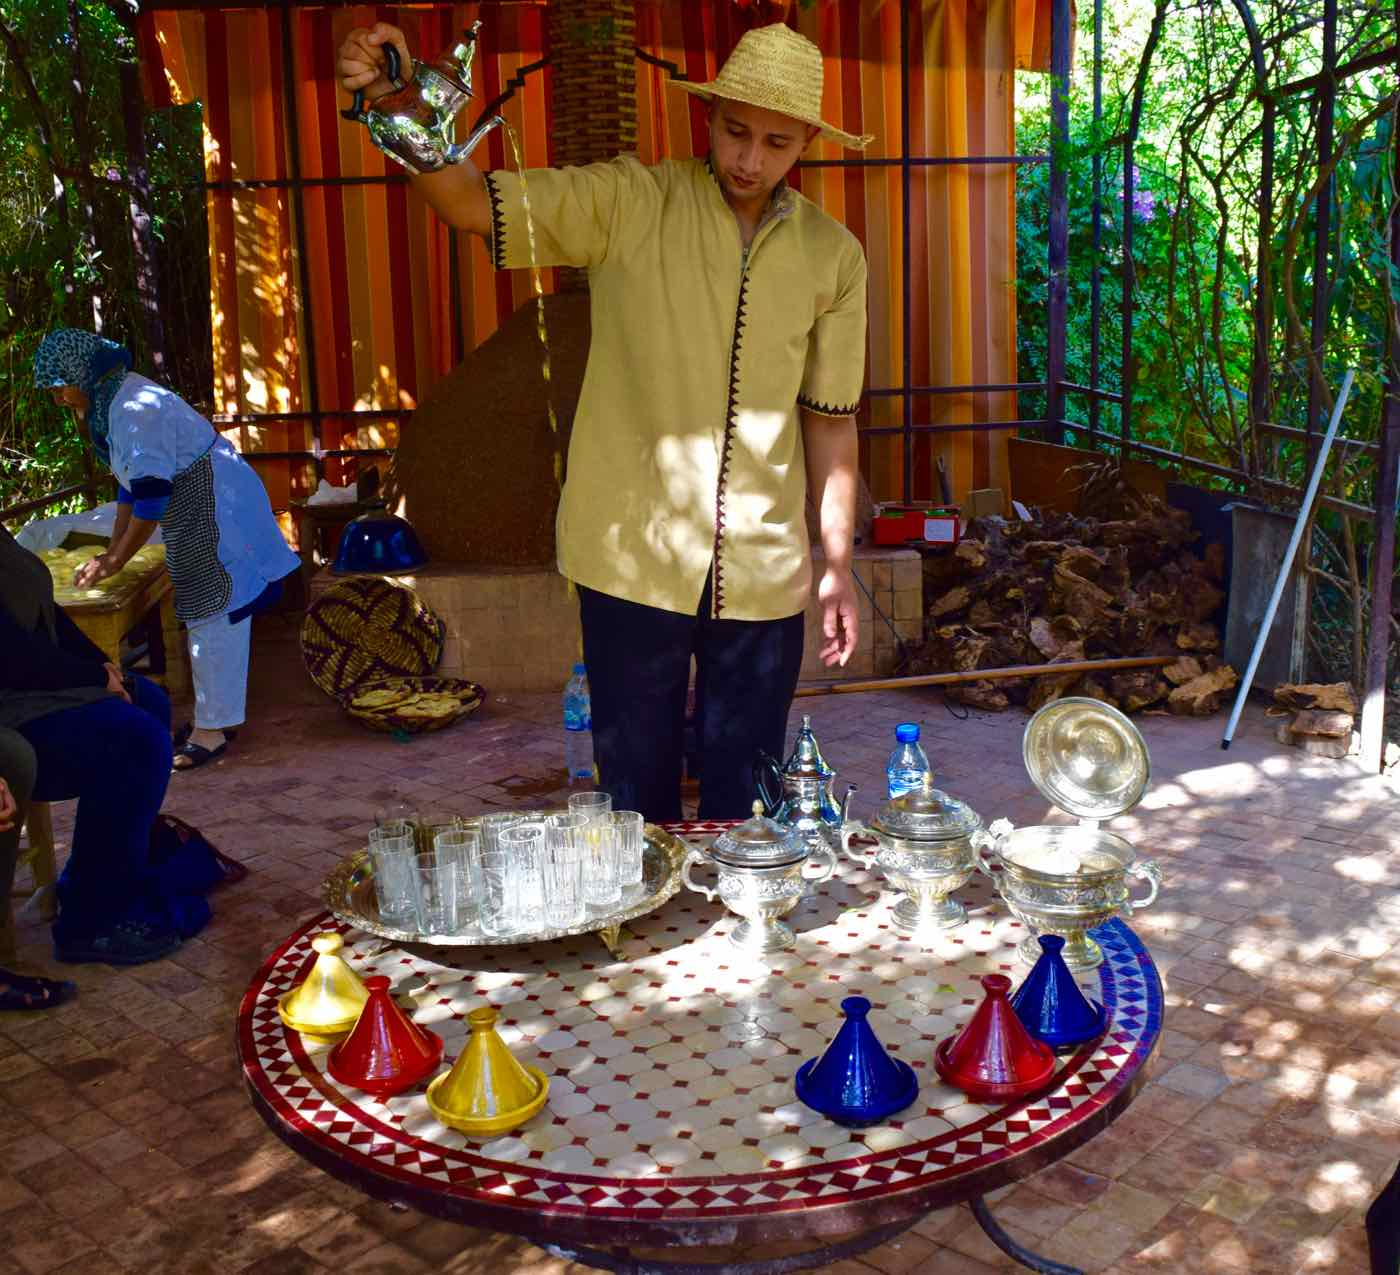 Moroccan Tea at La Maison Arabe Marrakech